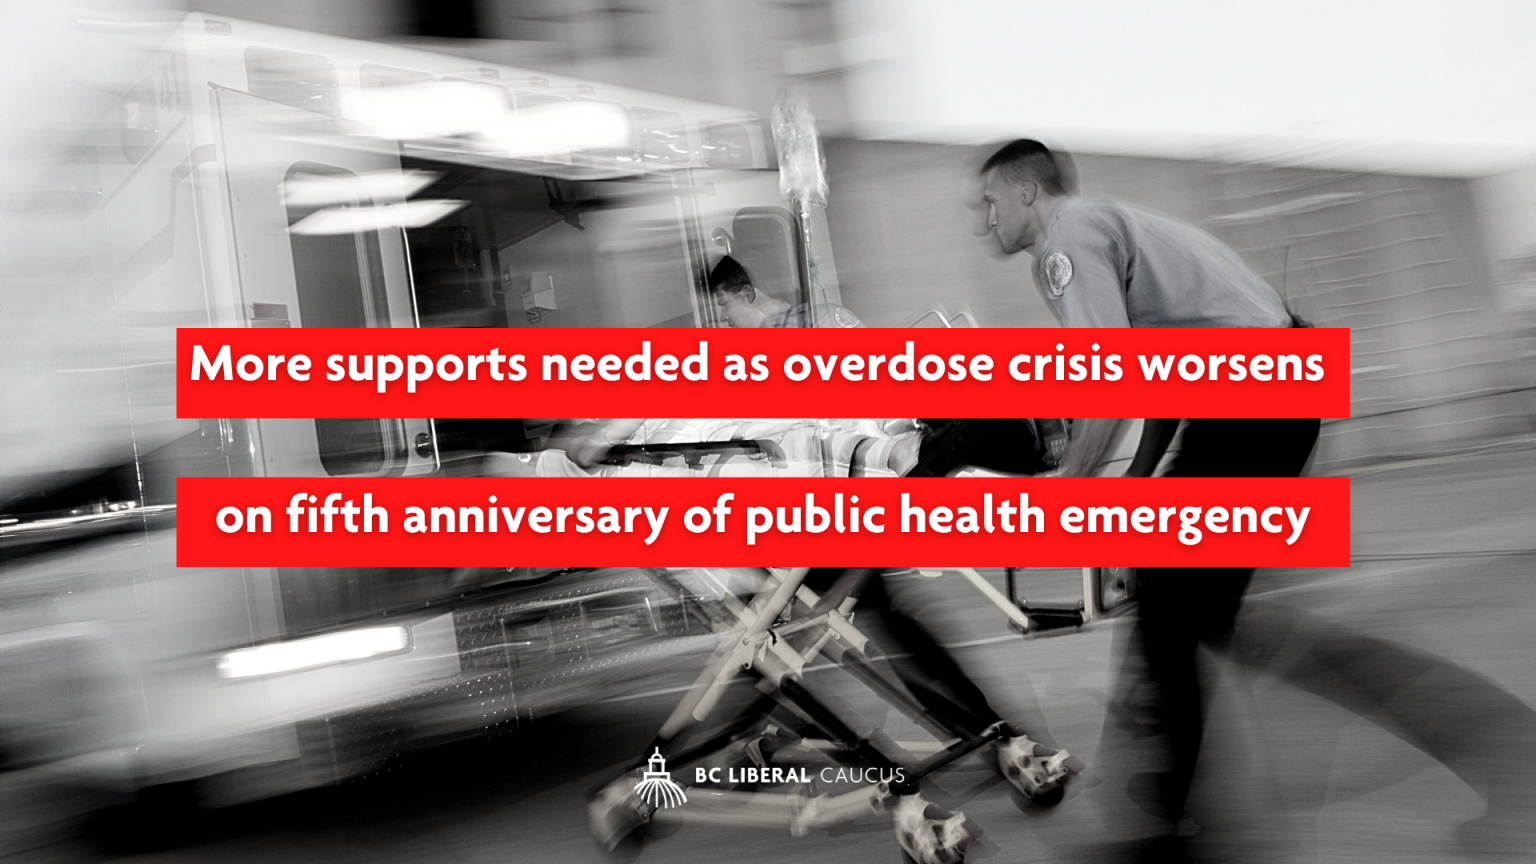 More supports needed as overdose crisis worsens on fifth anniversary of public health emergency